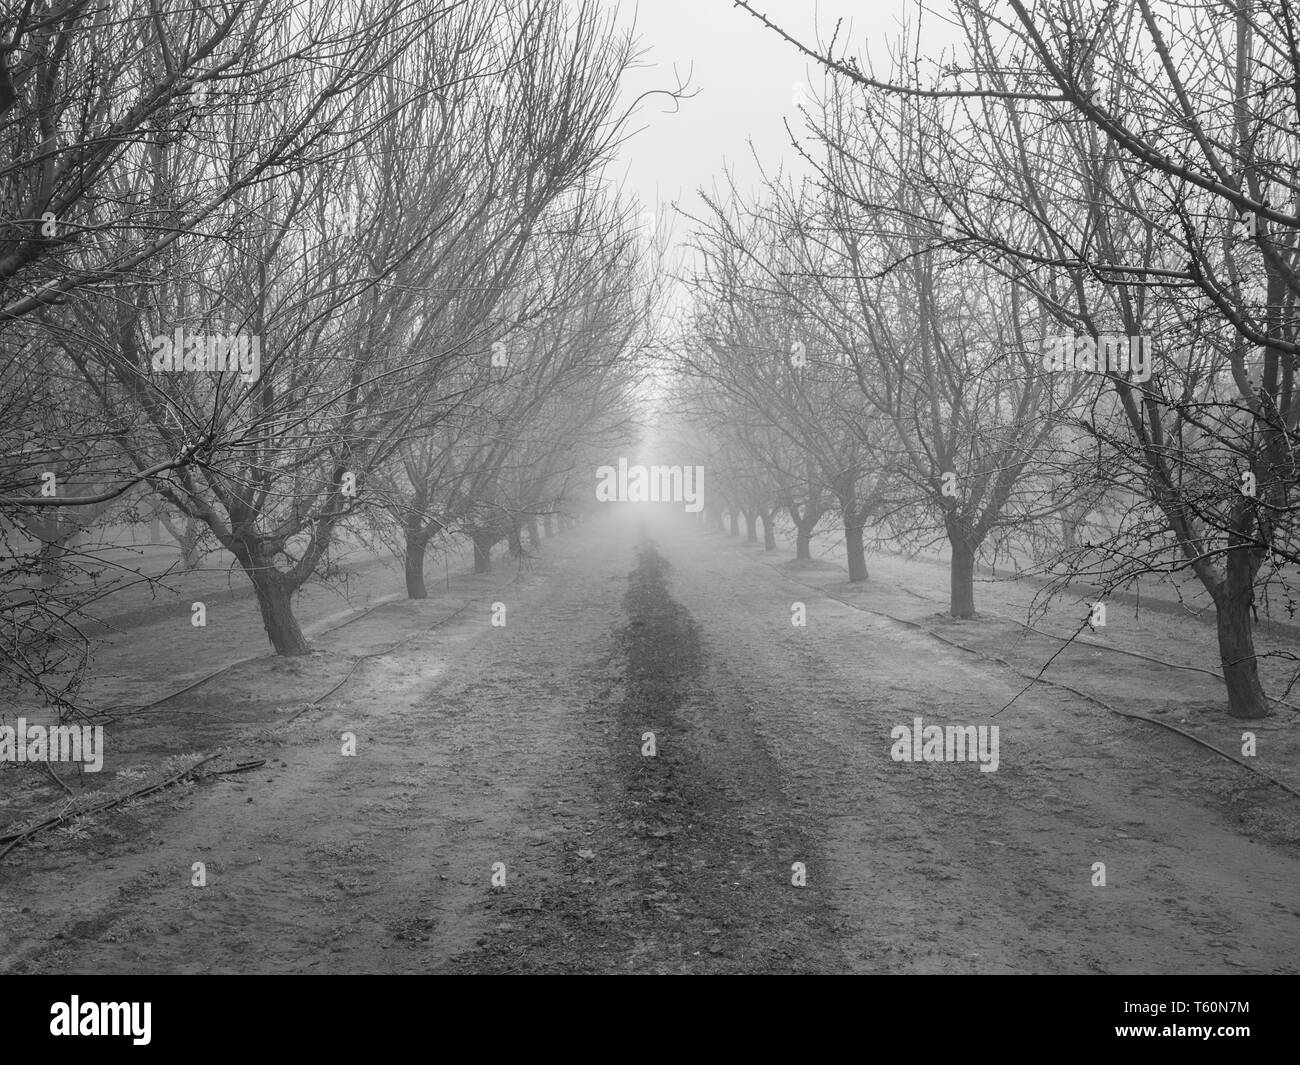 Rows of nut trees, San Joaquin Valley. - Stock Image